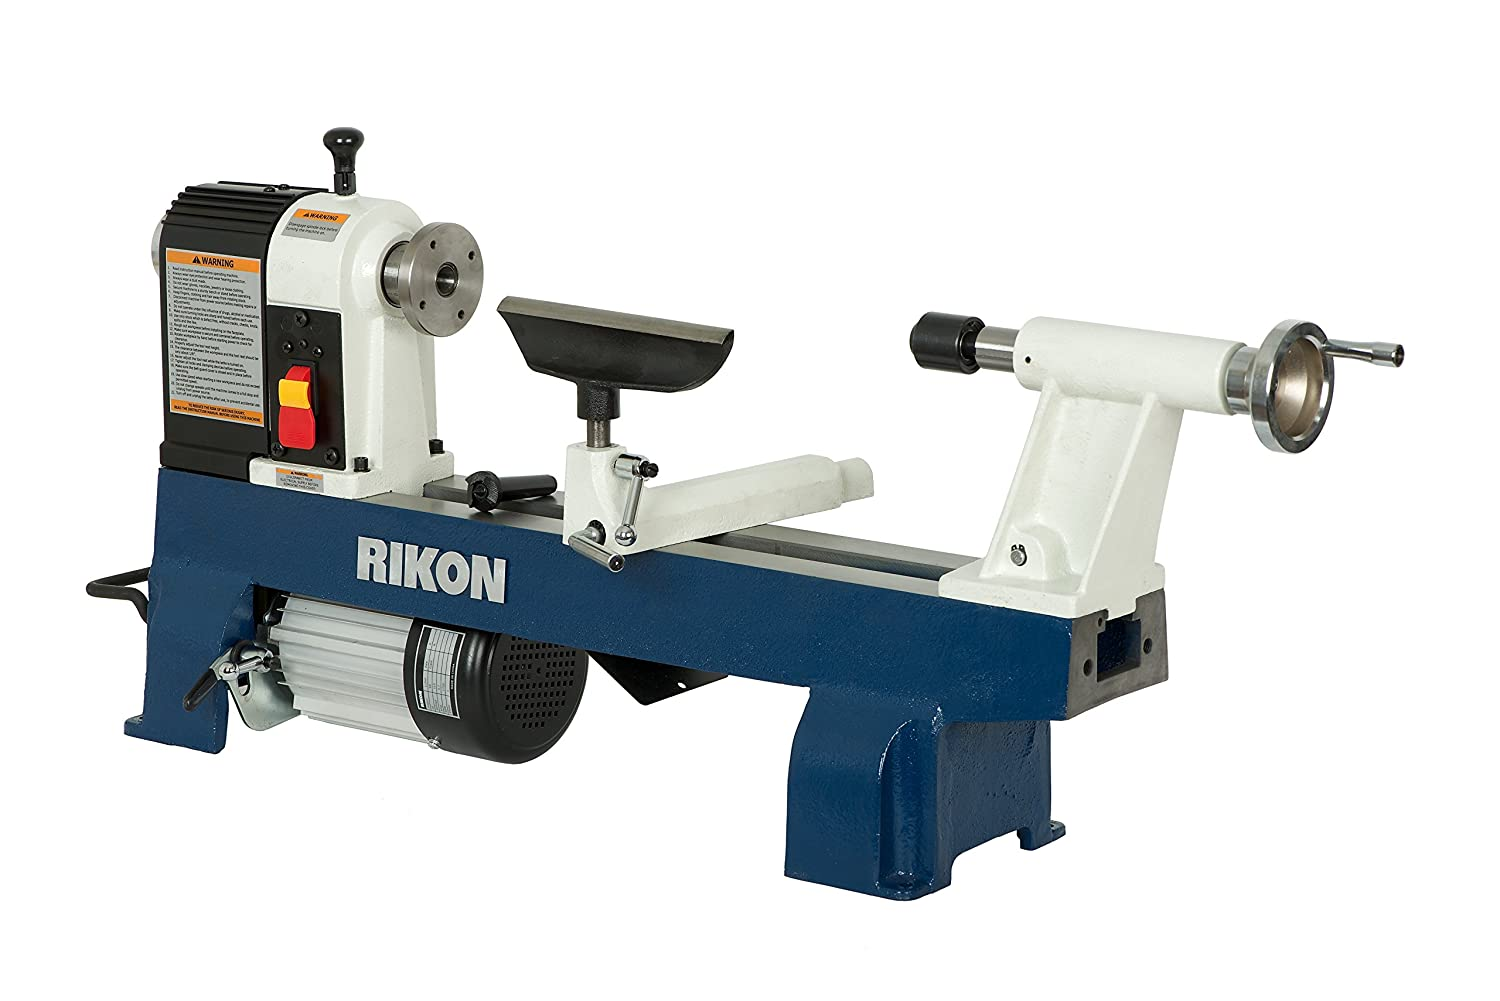 12-by-16-Inch Mini Lathe